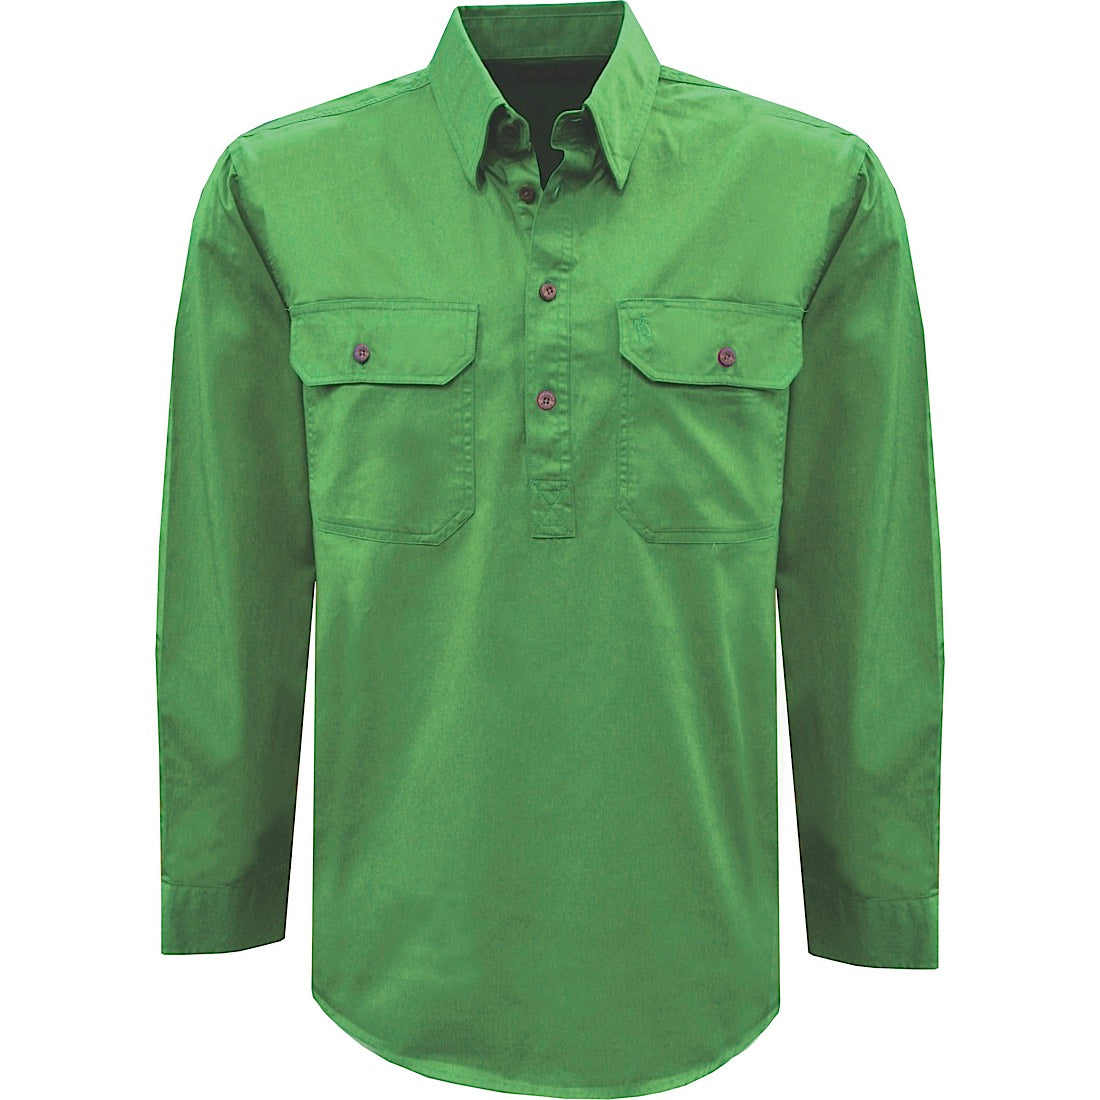 Thomas Cook Womens Heavy Drill 1/2 Plkt L/S 2- Pocket Shirt Lime